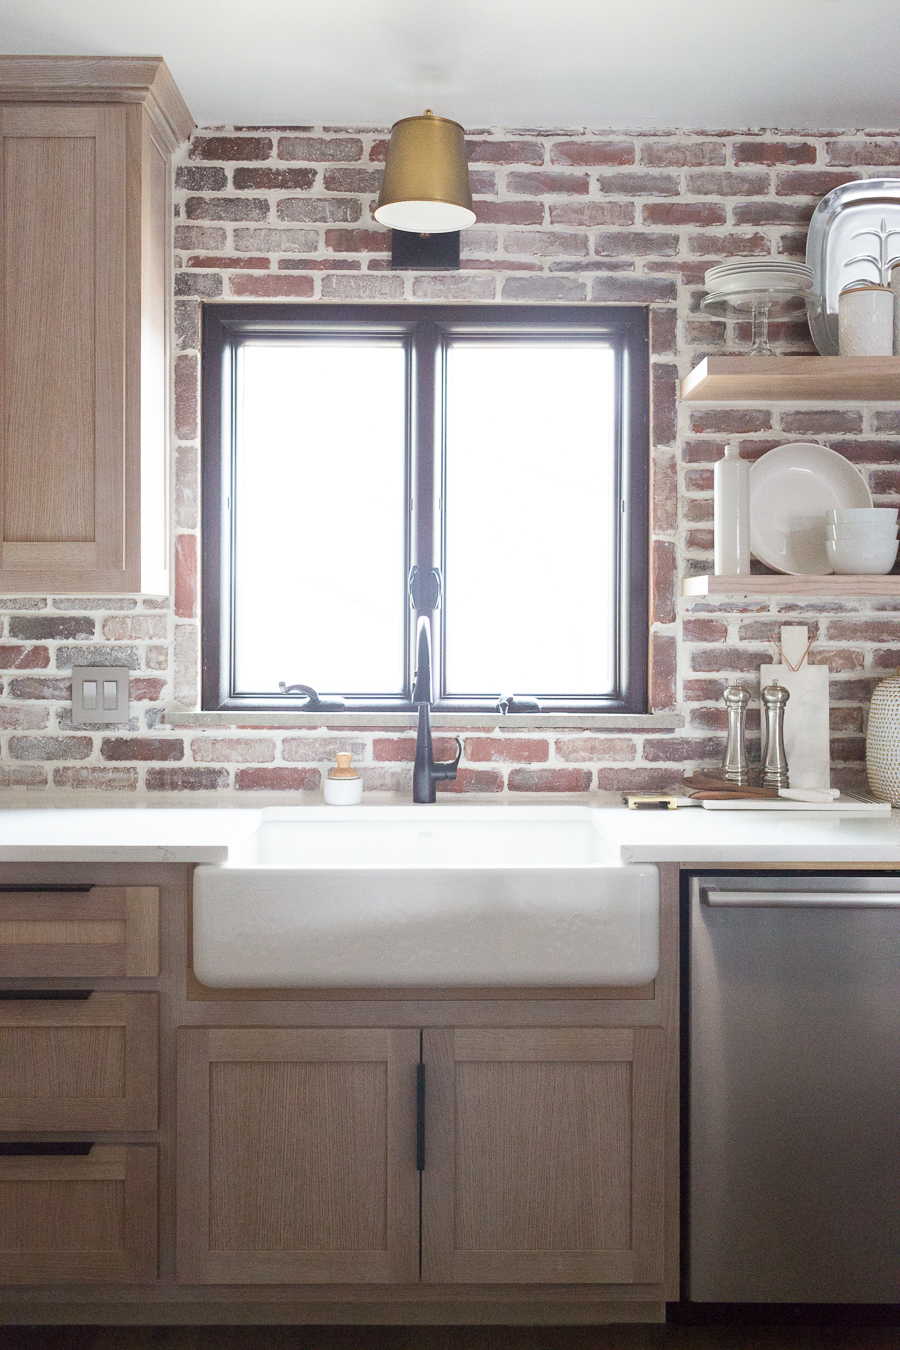 CC and Mike Kane Project Remodel Reveal brick kitchen bacskplash with a white farmhouse sink and black faucet rift sawn white oak cabinets with black hardware